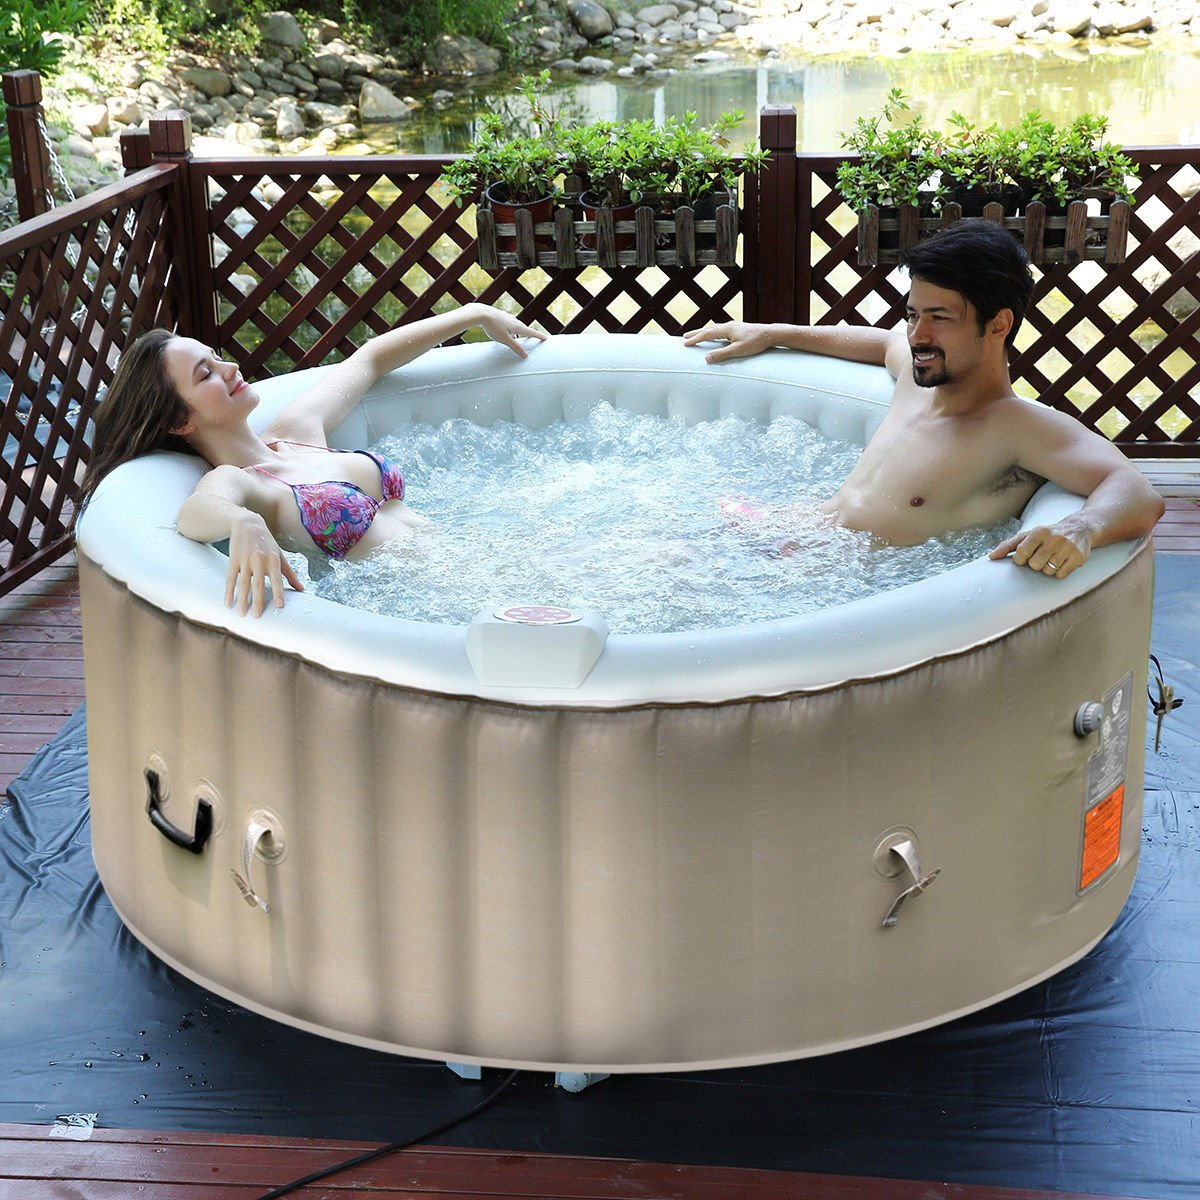 The Best Outdoor Hot Tubs For Your Garden: Reviews & Buying Guide 16